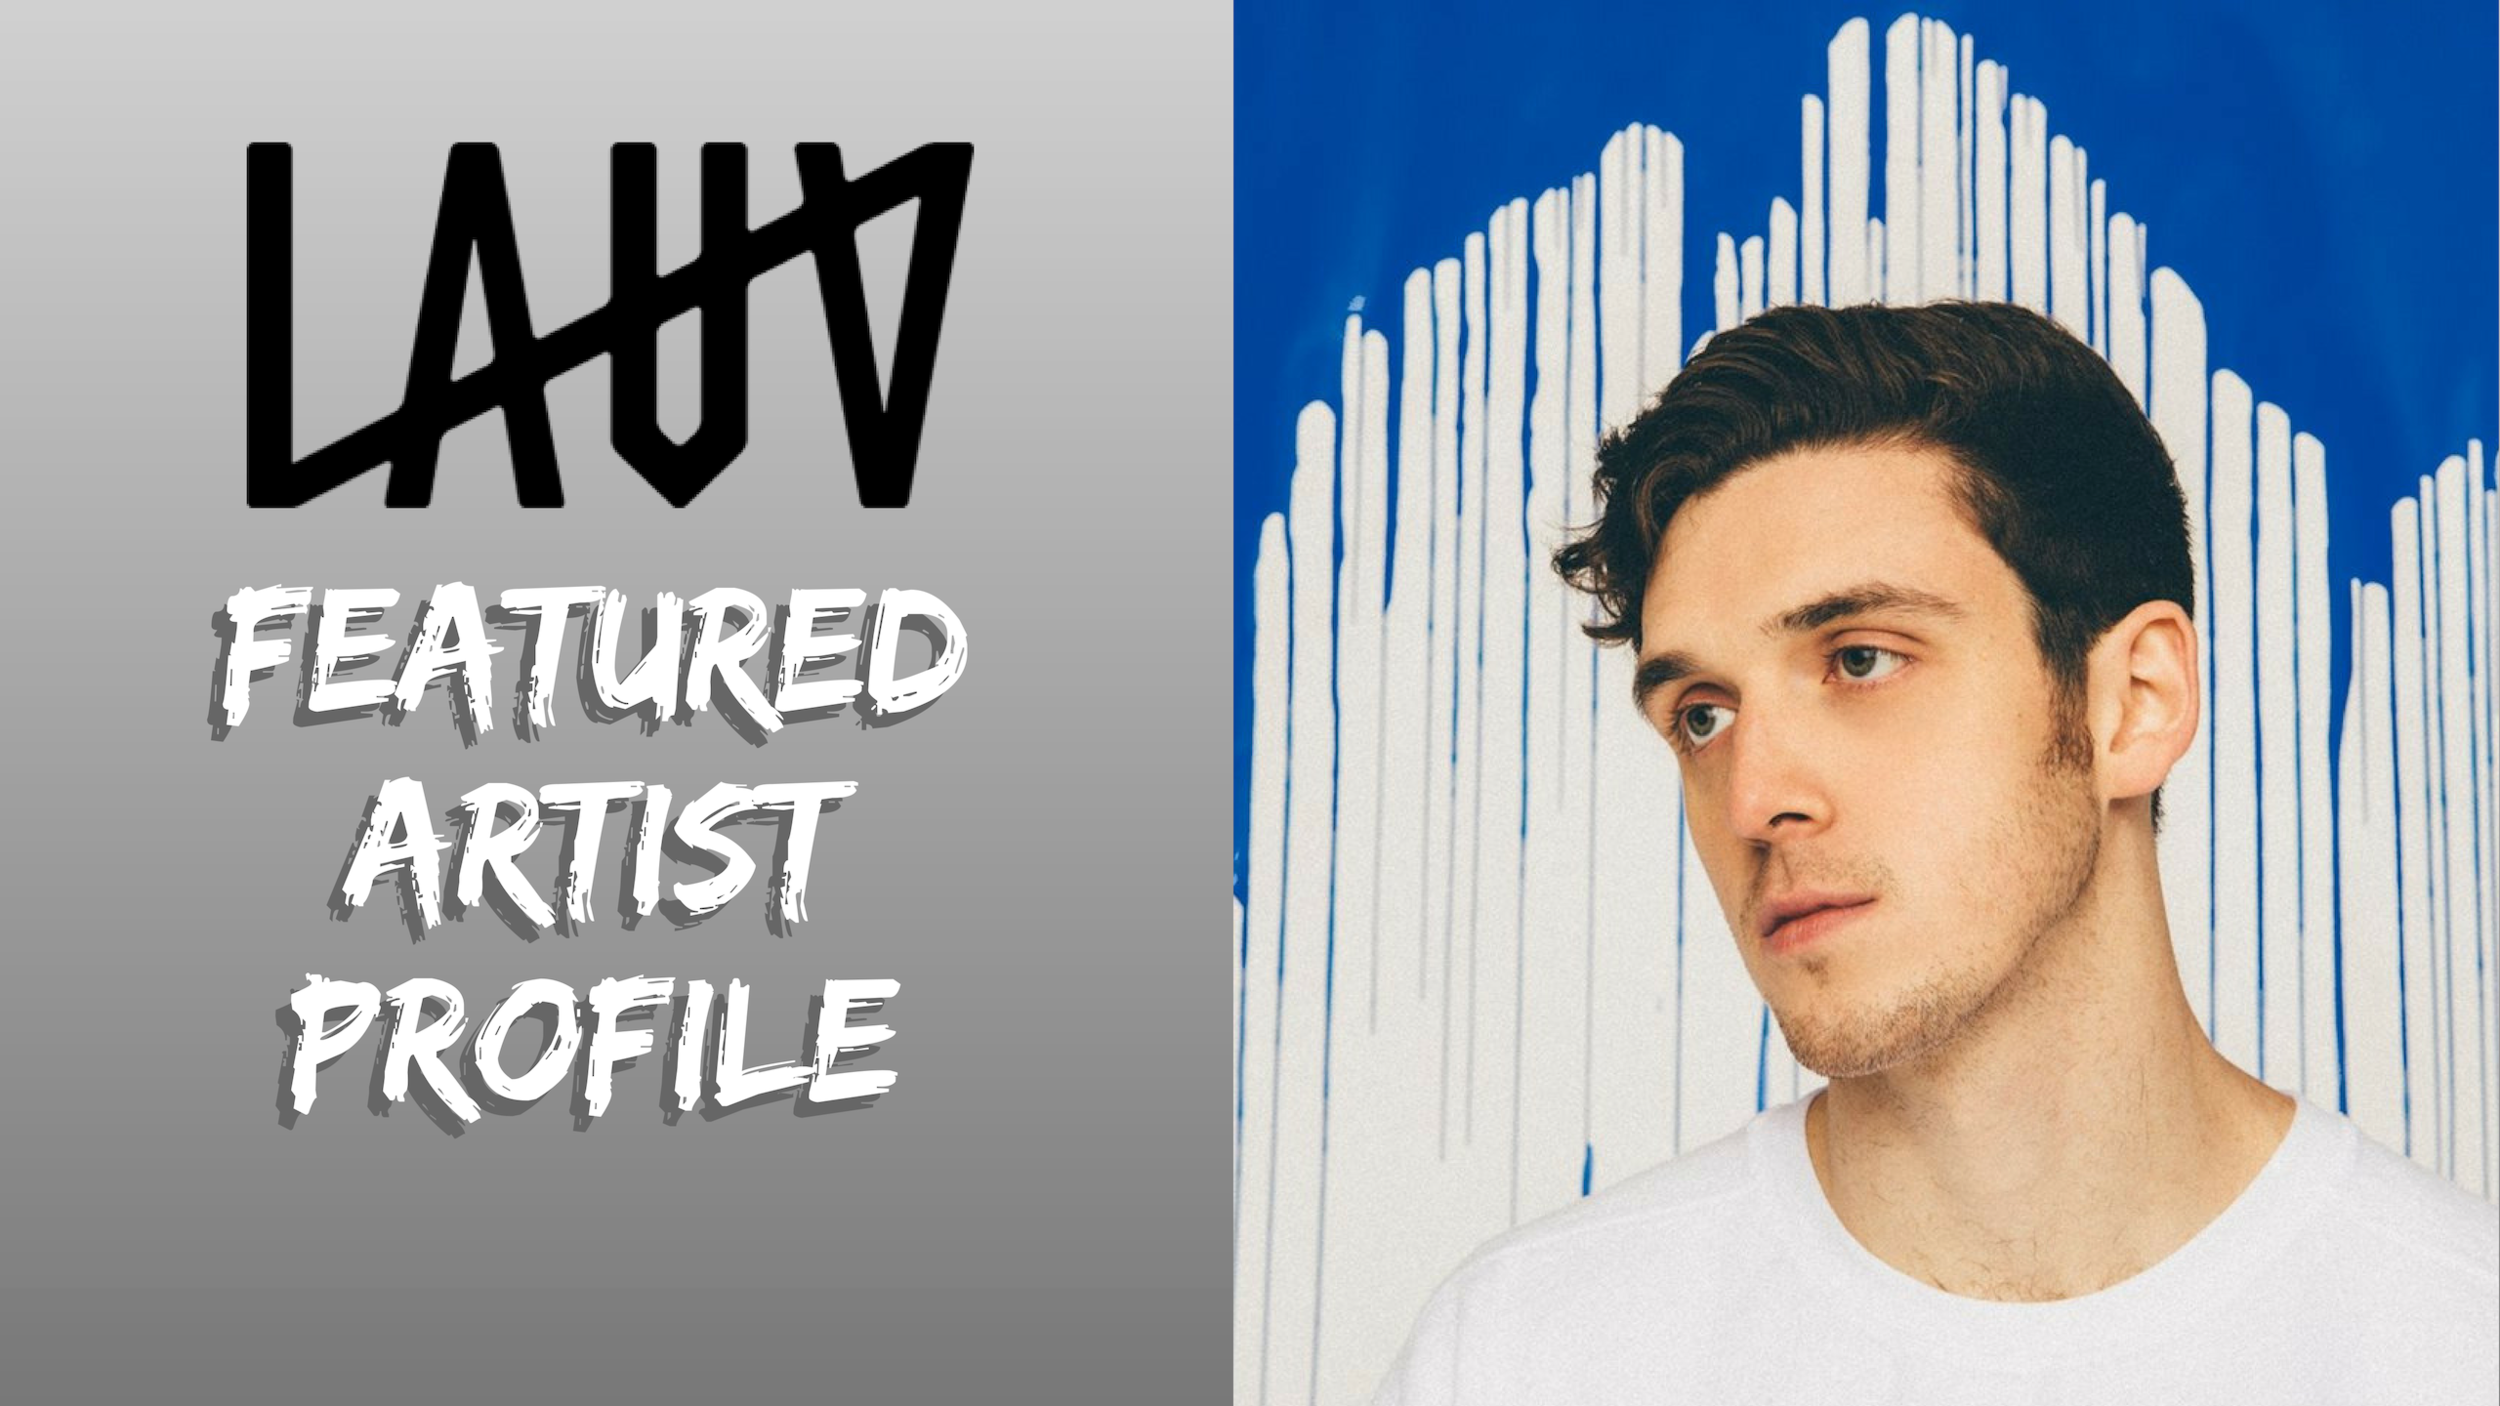 Lauv featured artist profile.png